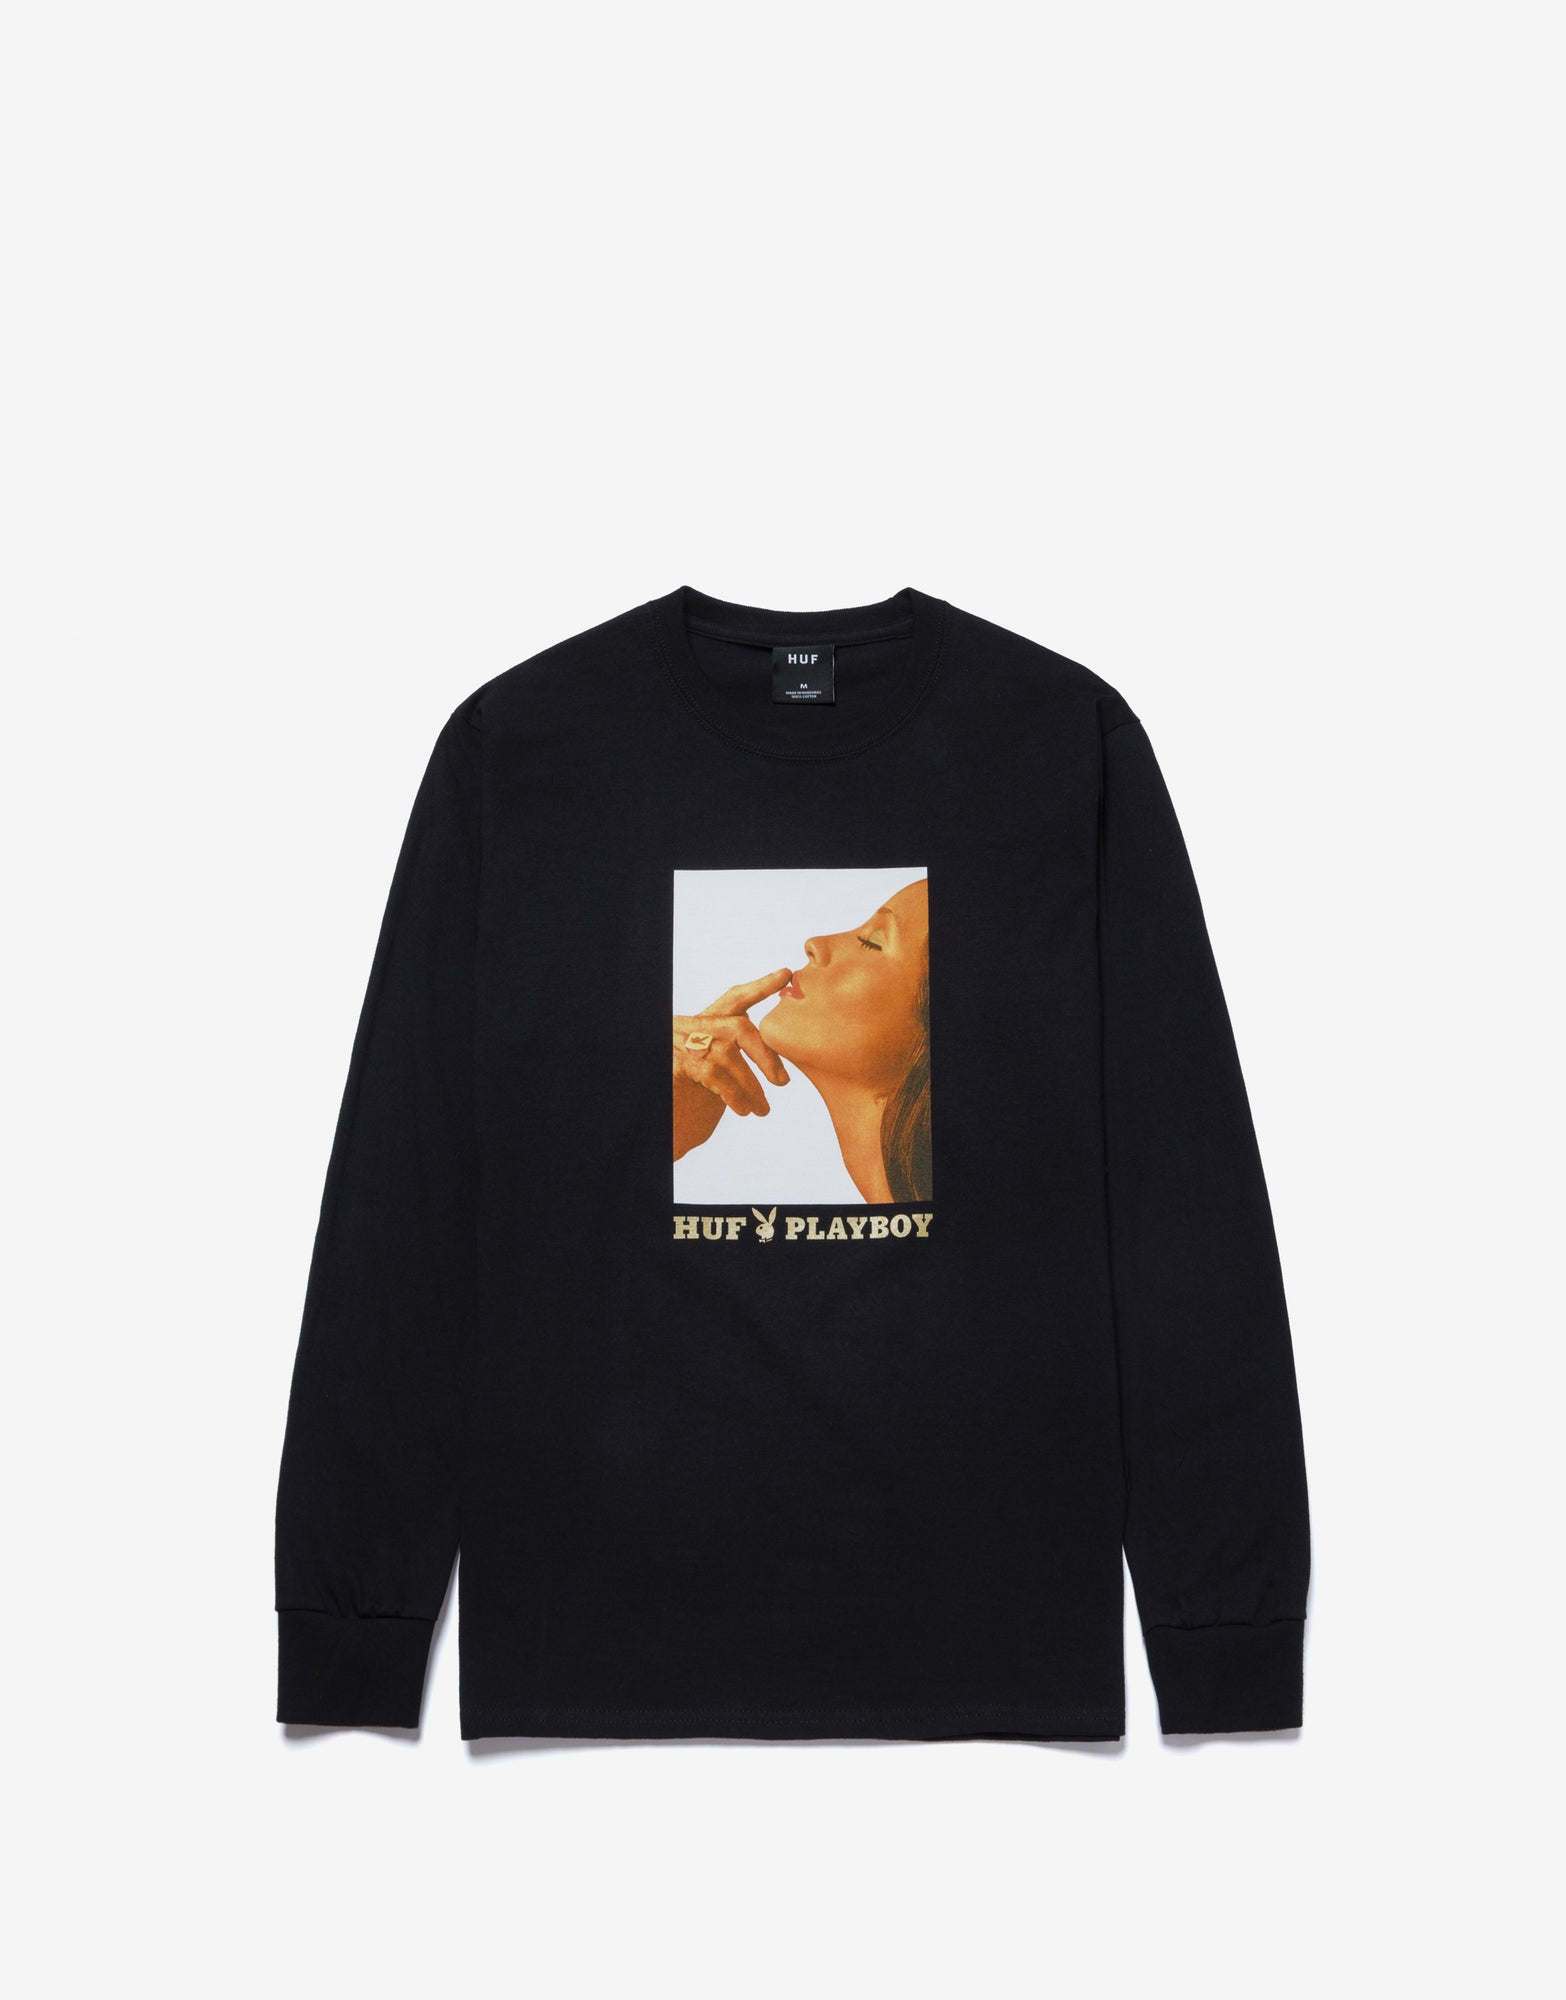 HUF x Playboy Lust For Life Long Sleeve T Shirt - Black